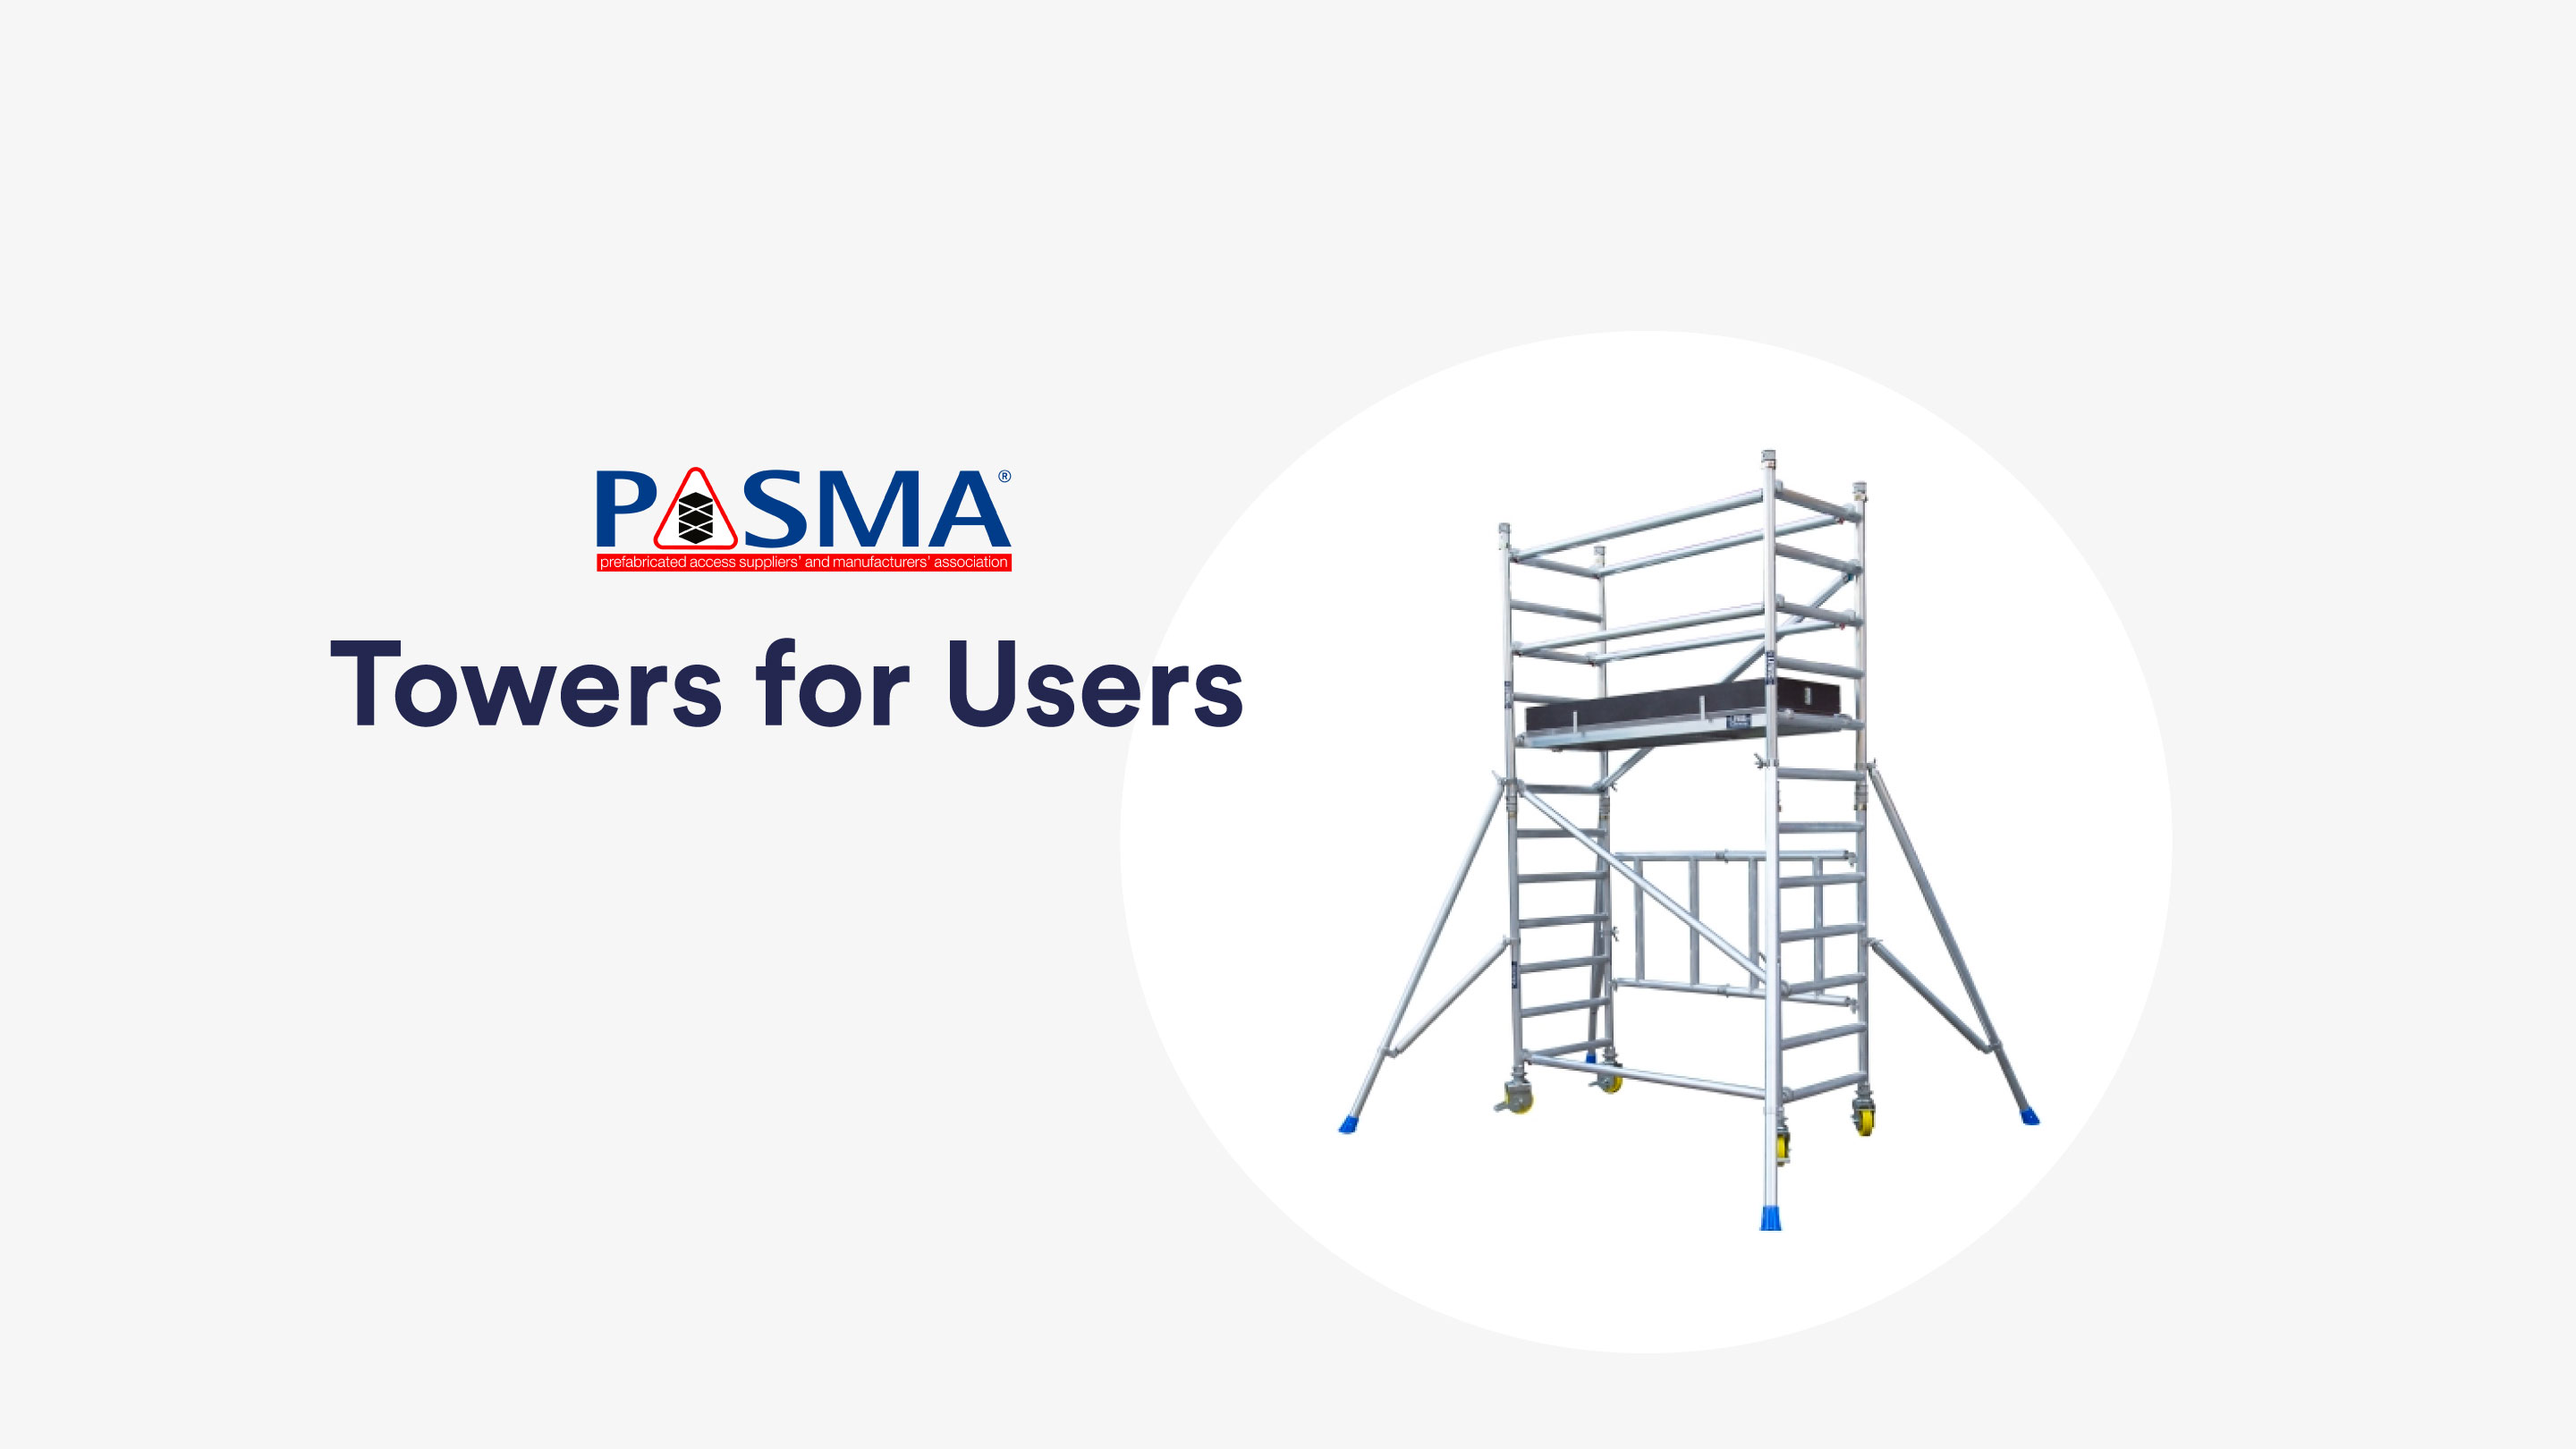 pasma_towers_for_users_training_course_in_stoke_on_trent.jpg